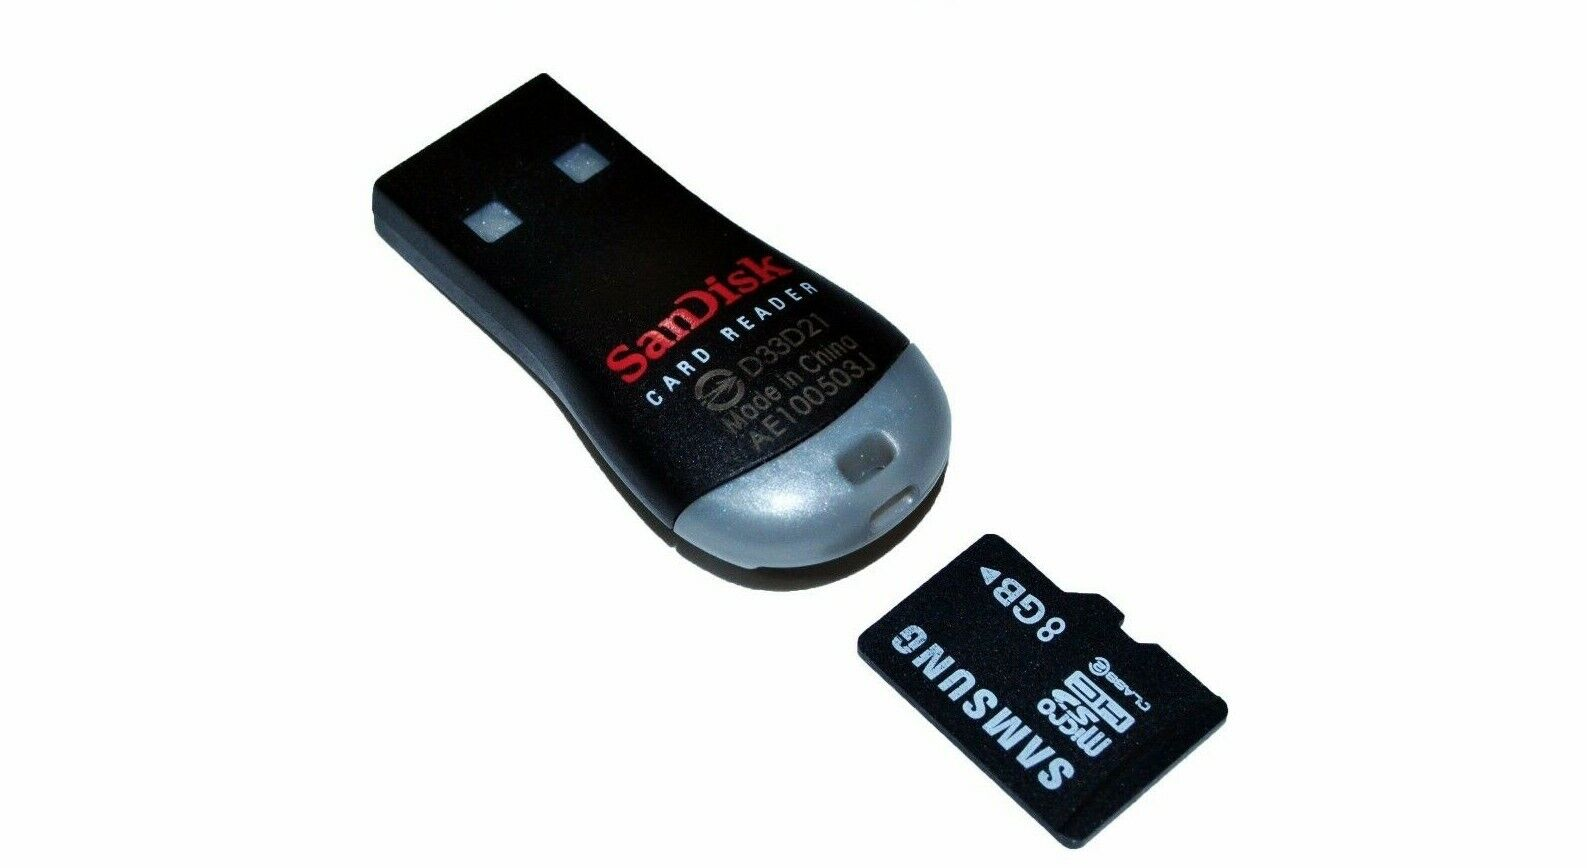 2x LOT Genuine Sandisk SDDR-121-G35 MobileMate MicroSD to US